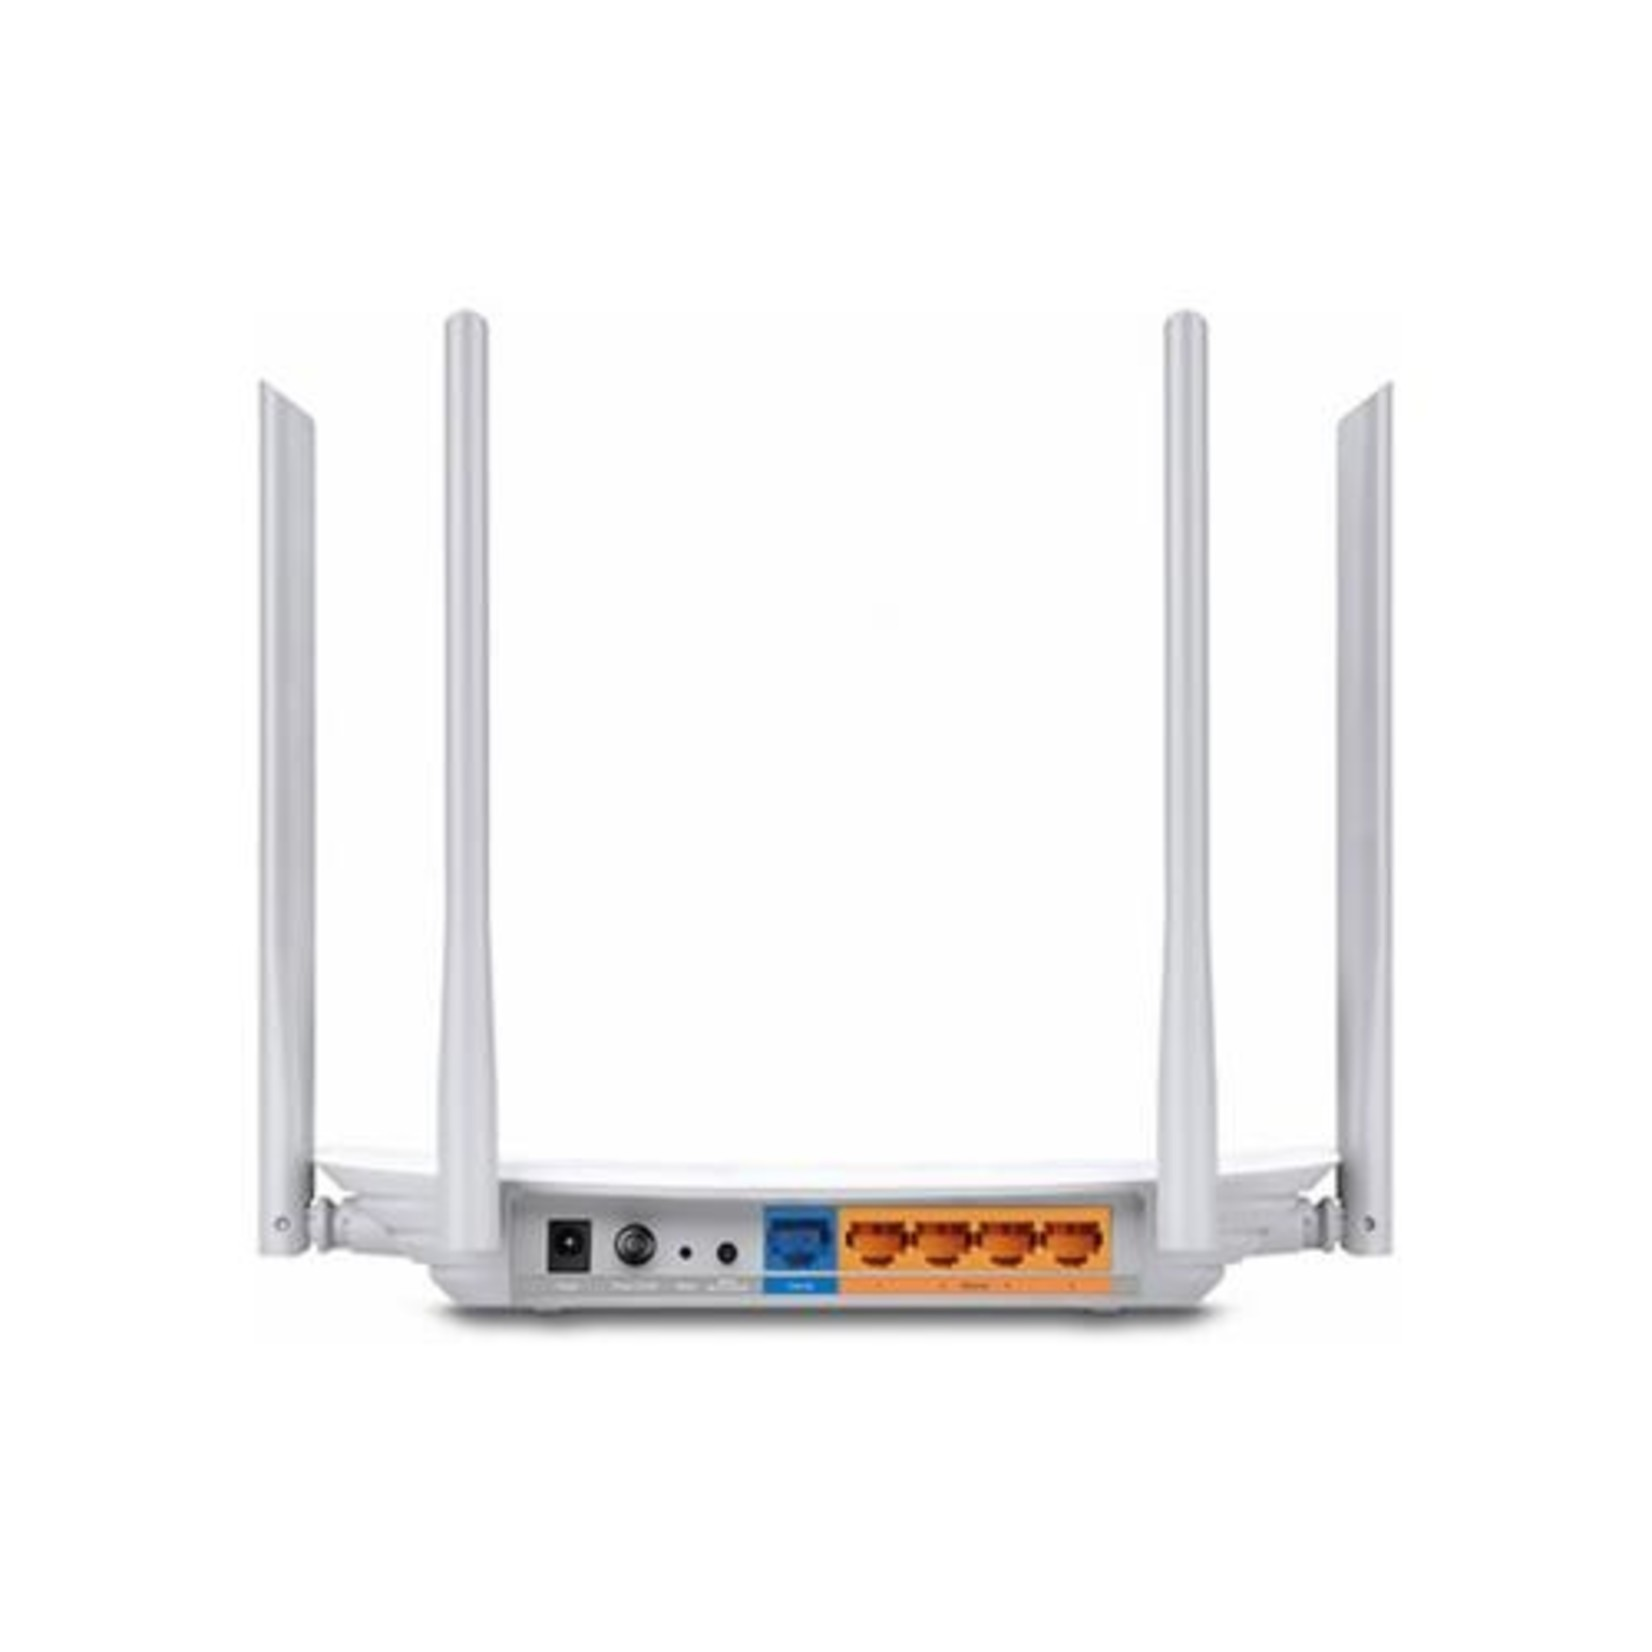 TP-Link ArcherC50 5Ghz AC + Router (refurbished)